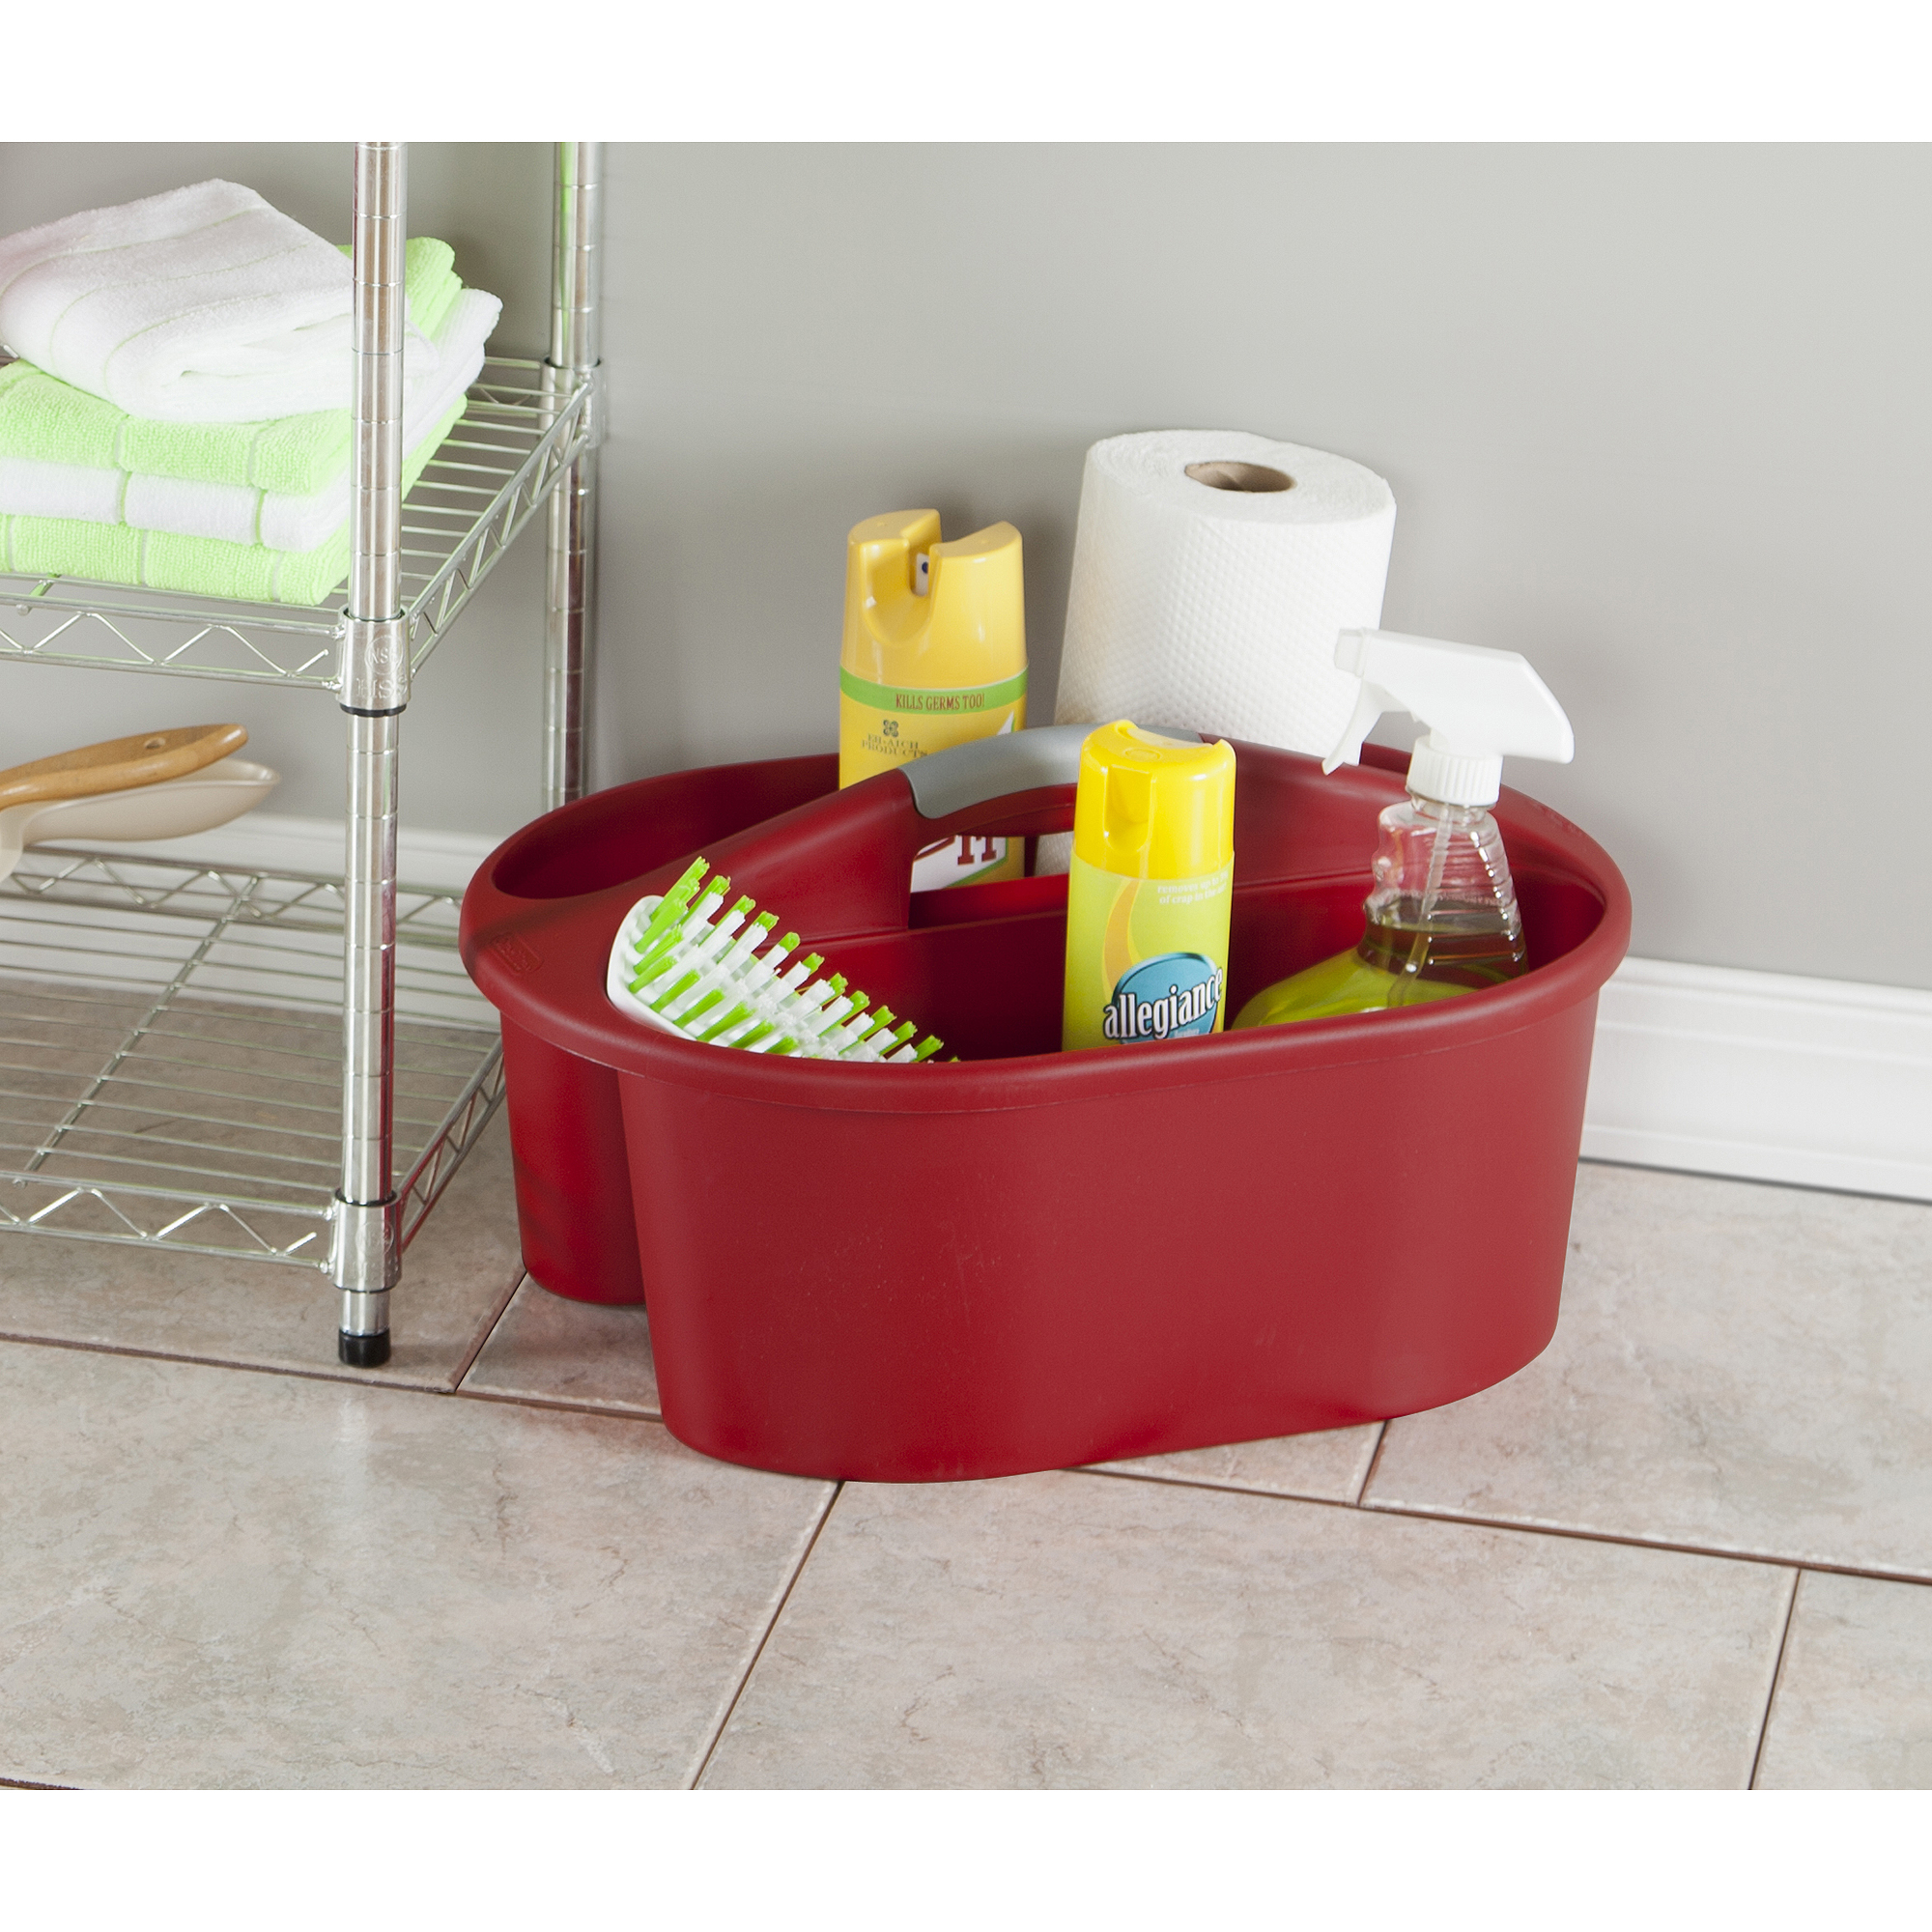 Sterilite Ultra Caddy, Large - Walmart.com